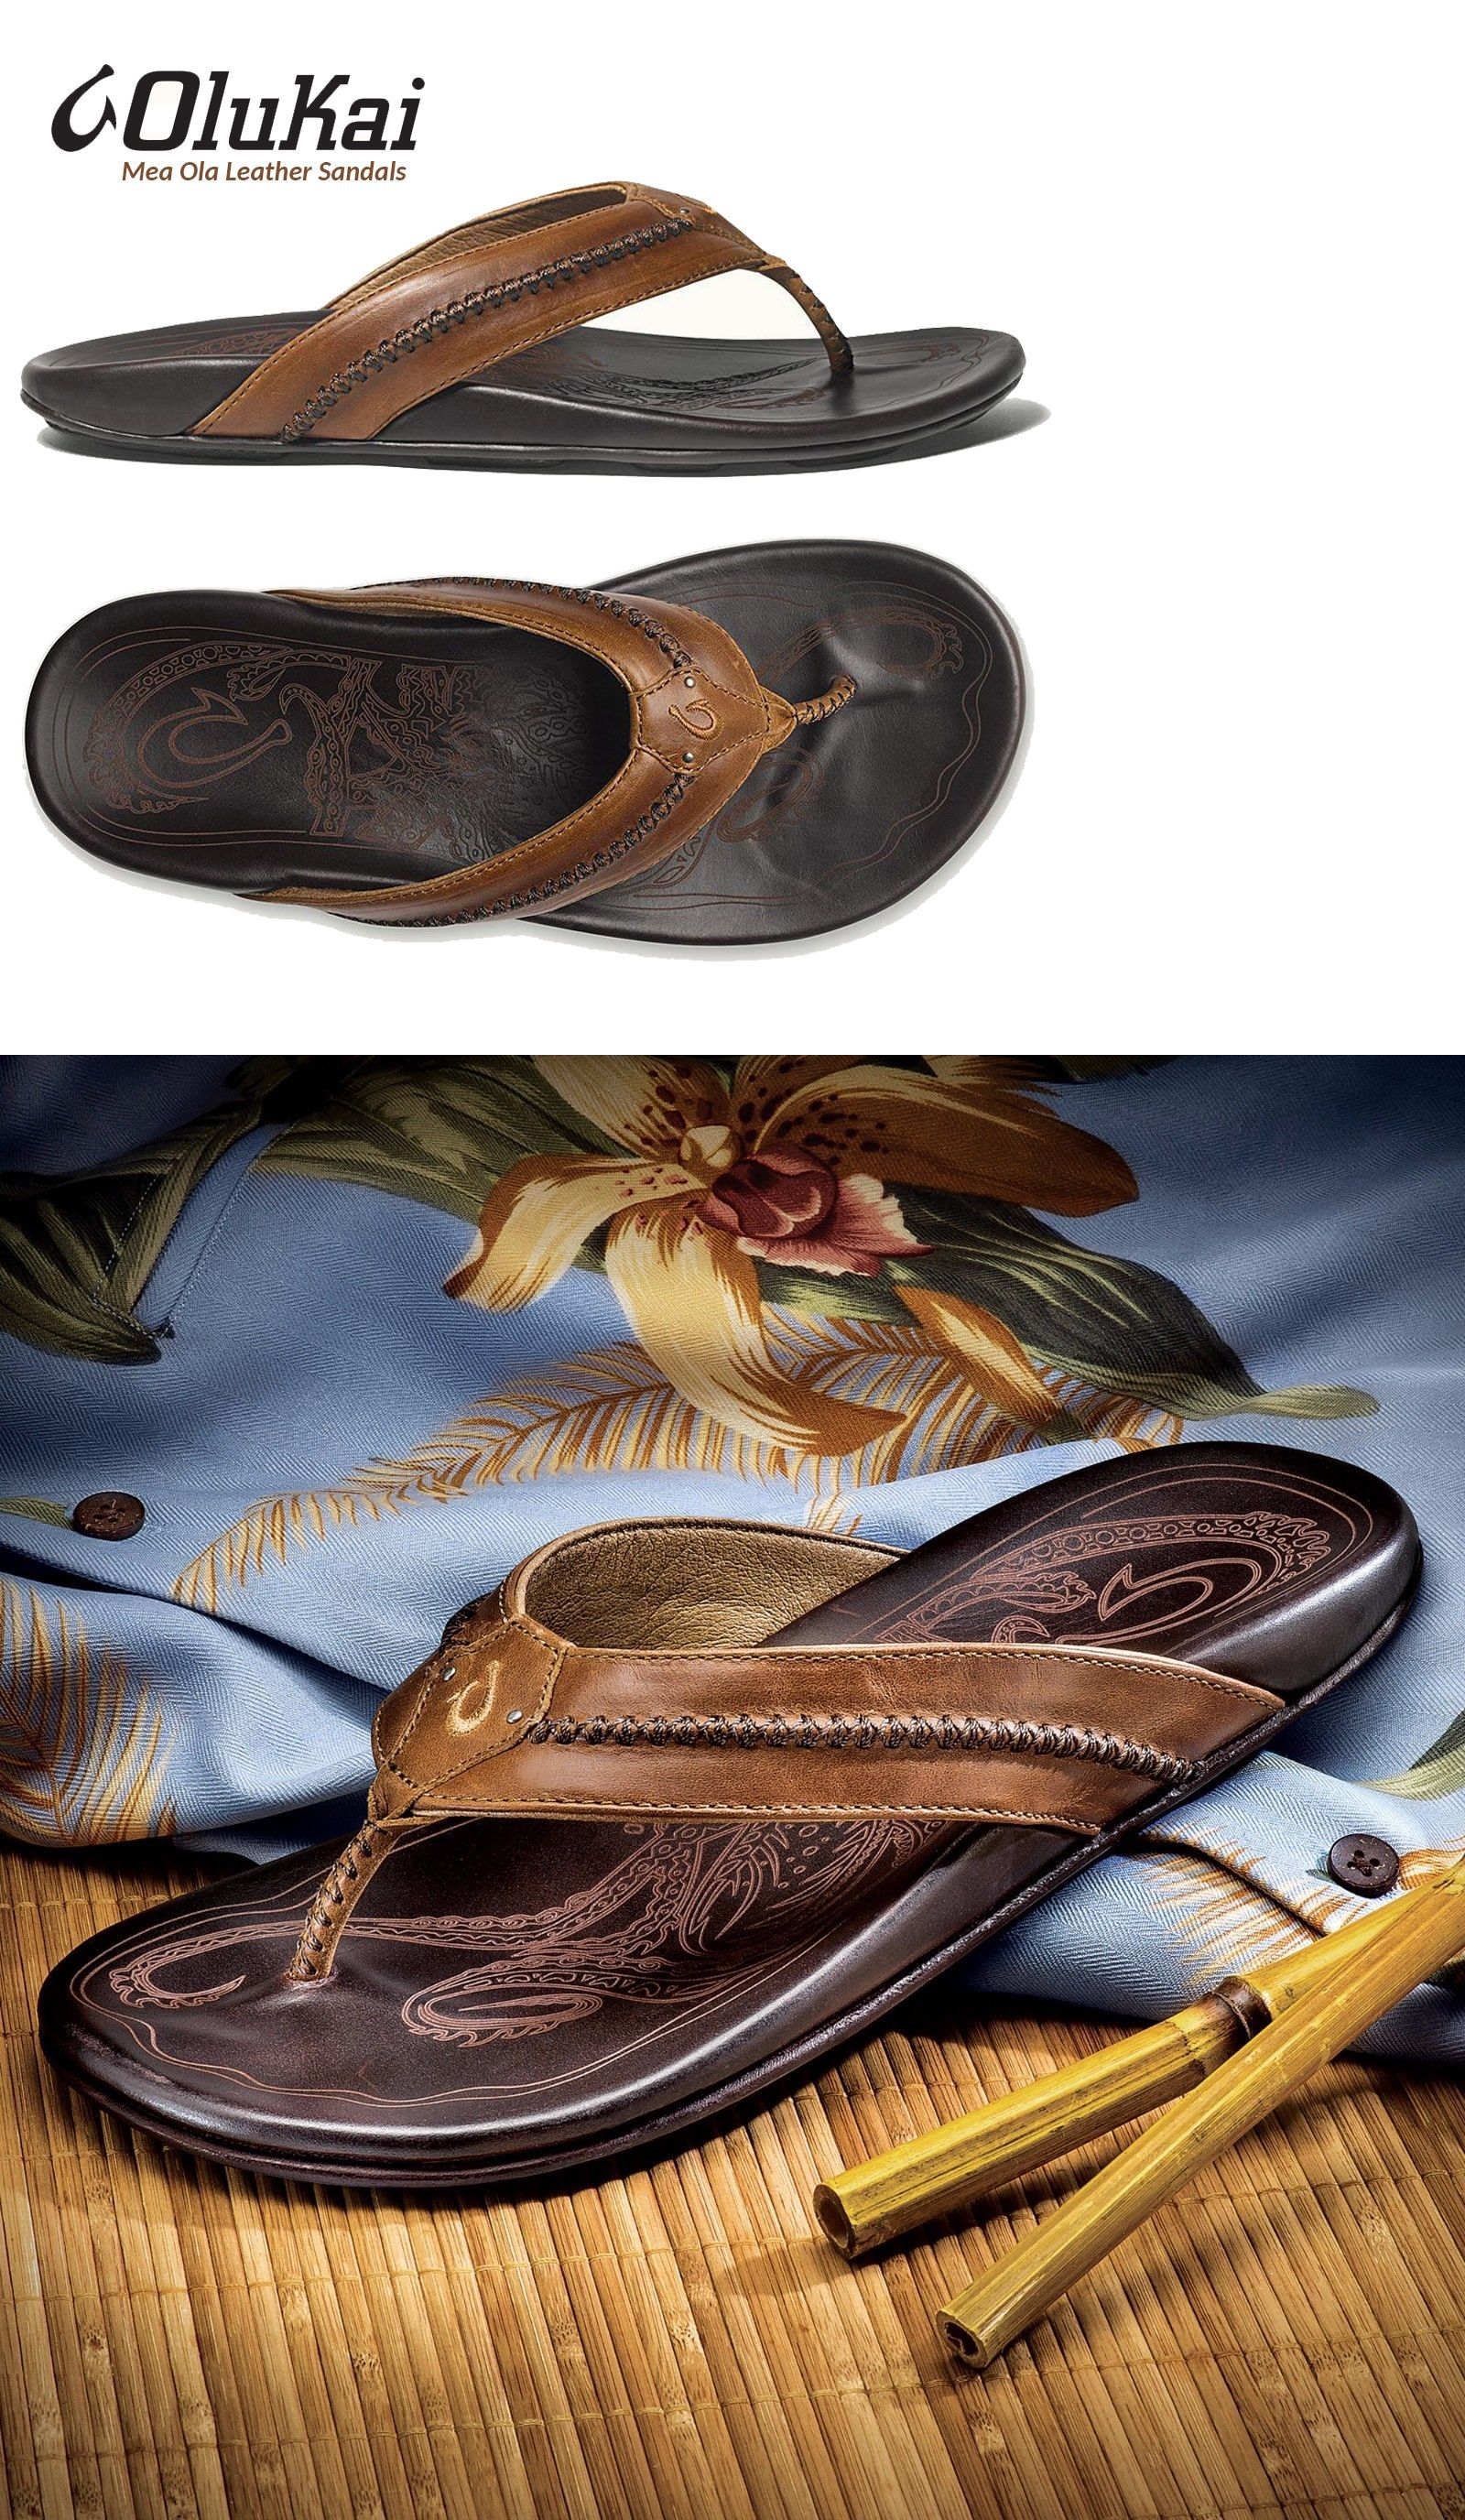 dd70430bd698c Sandals and Flip Flops 11504  Olukai Mea Ola Tan Dark Java Leather Men S Sandals  Premium Quality 8 9 10 11 12 -  BUY IT NOW ONLY   105.6 on eBay!